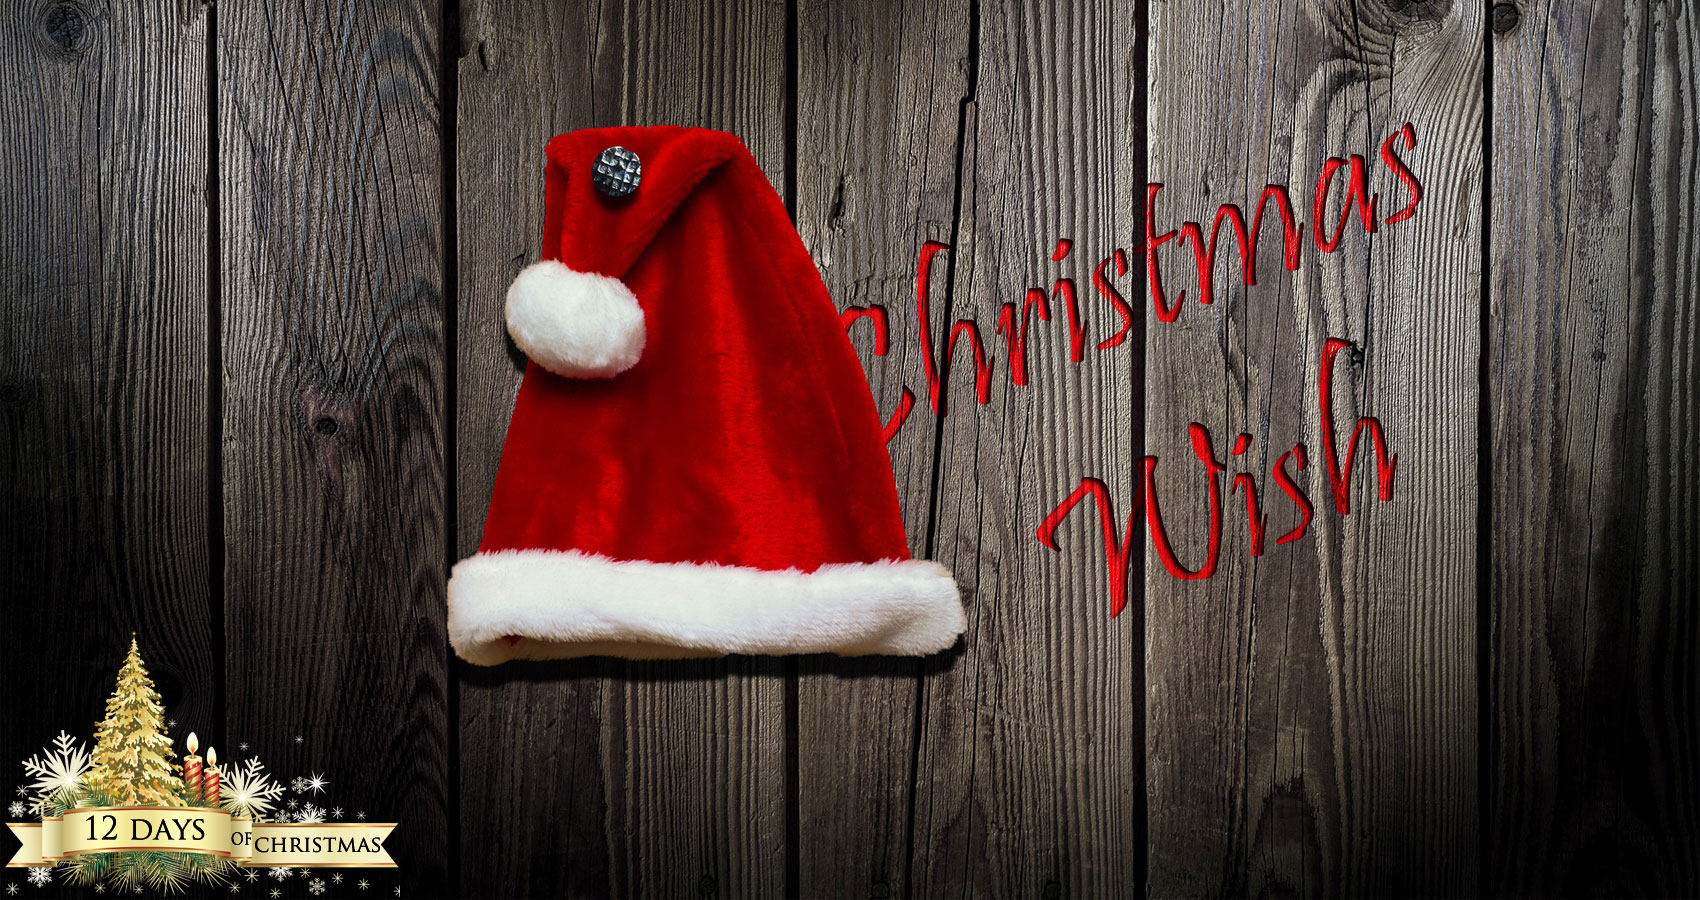 Christmas Wish written by Jan Smith at Spillwords.com